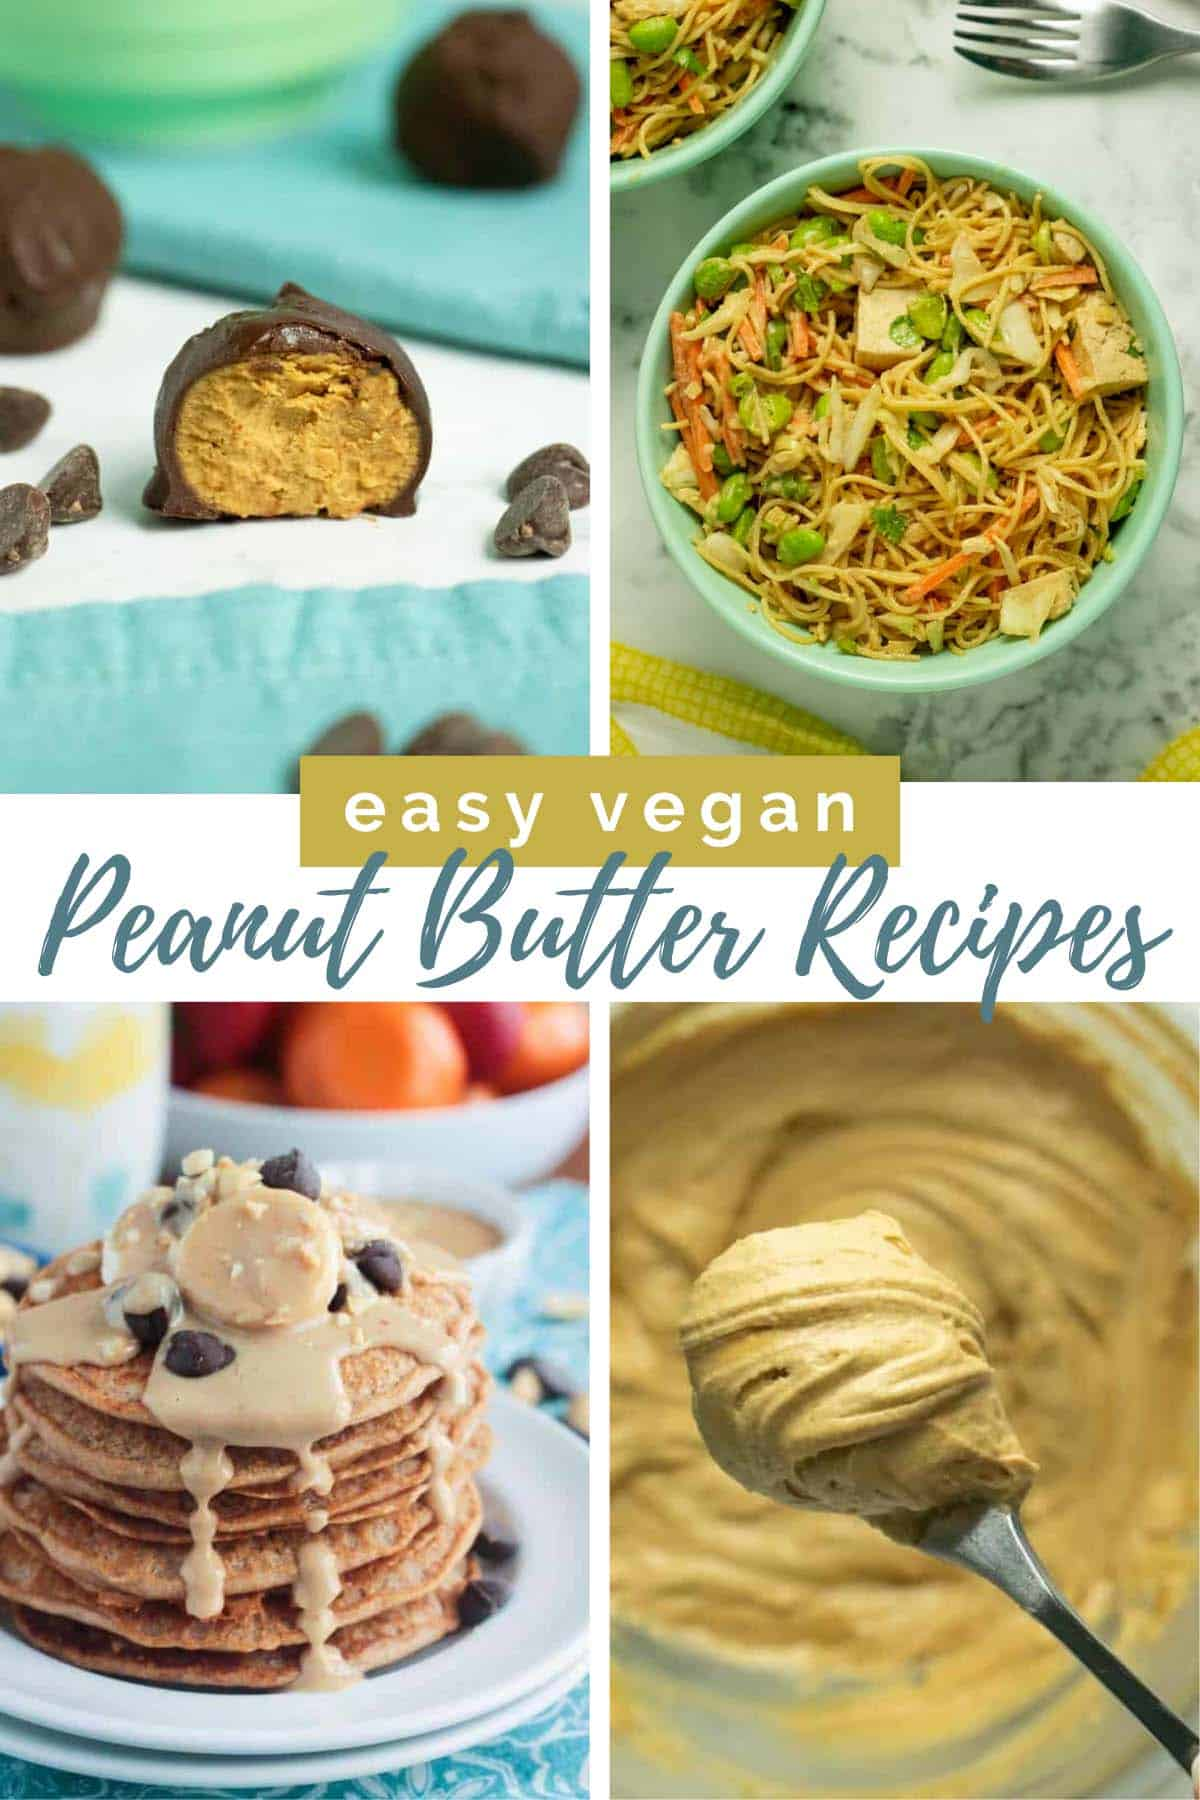 image collage of vegan peanut butter recipes: energy bites, noodles, pancakes, frosting, text overlay